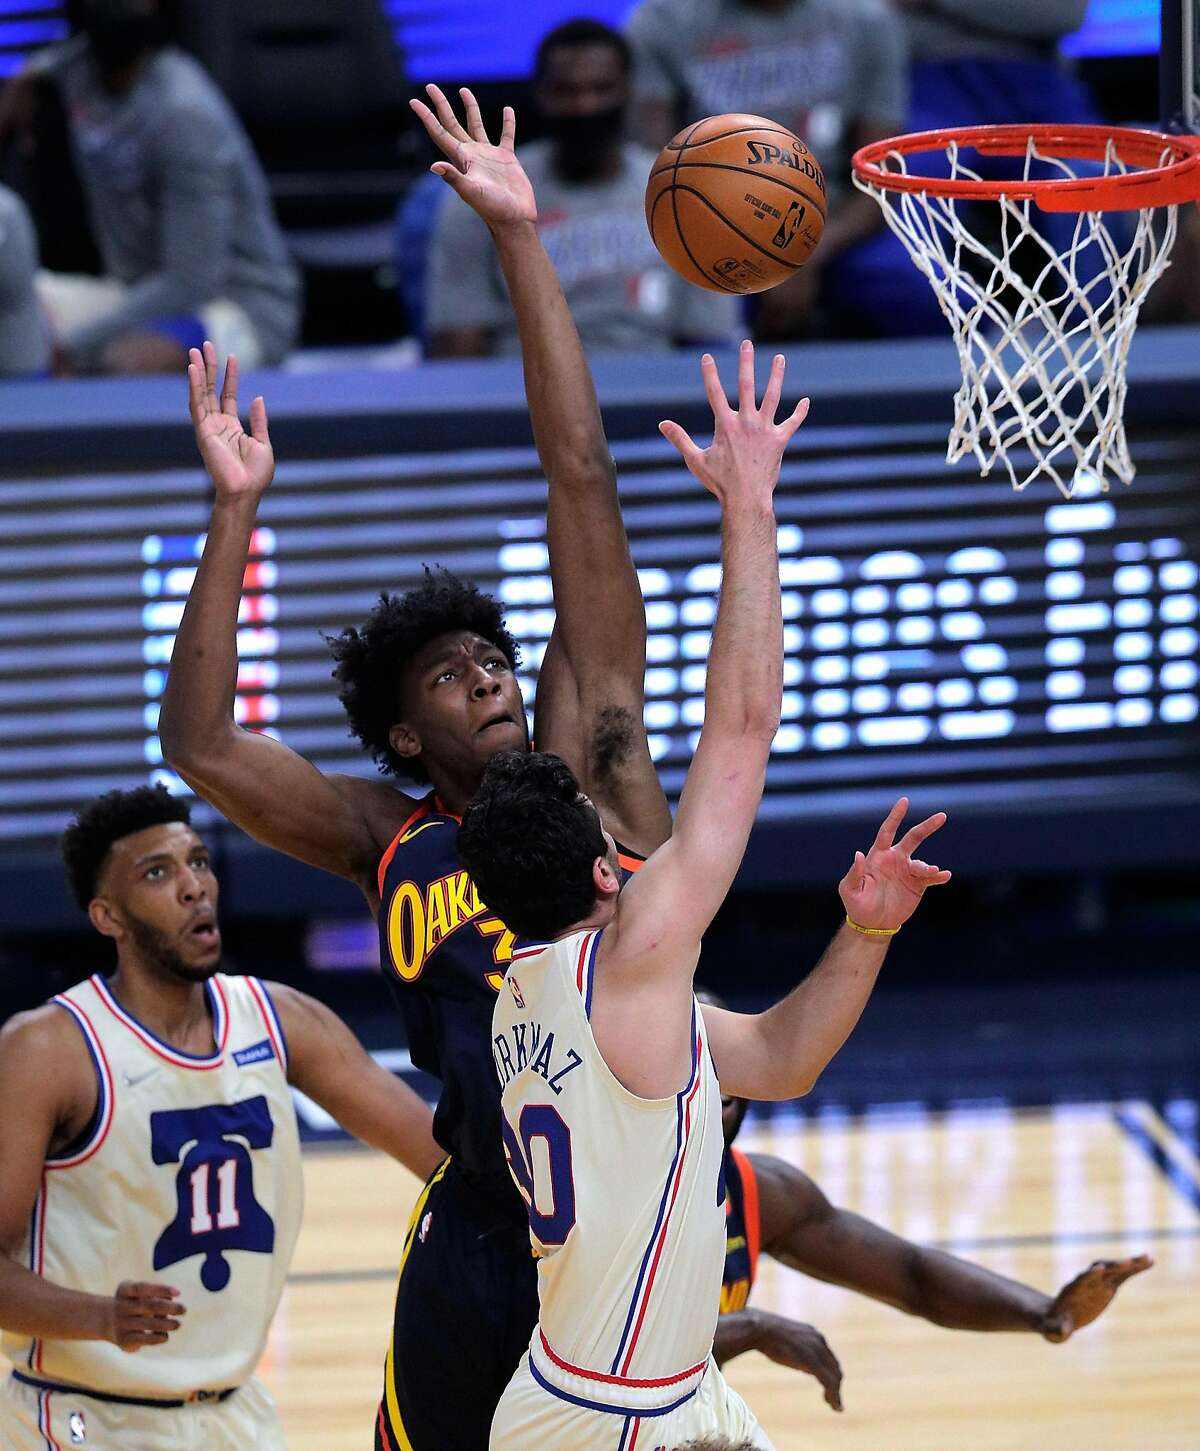 James Wiseman (33) goes up to defend against a shot by Furkan Korkmaz (30) in the first half as the Golden State Warriors played the Philadelphia 76ers at Chase Center in San Francisco, Calif., on Tuesday, March 23, 2021.